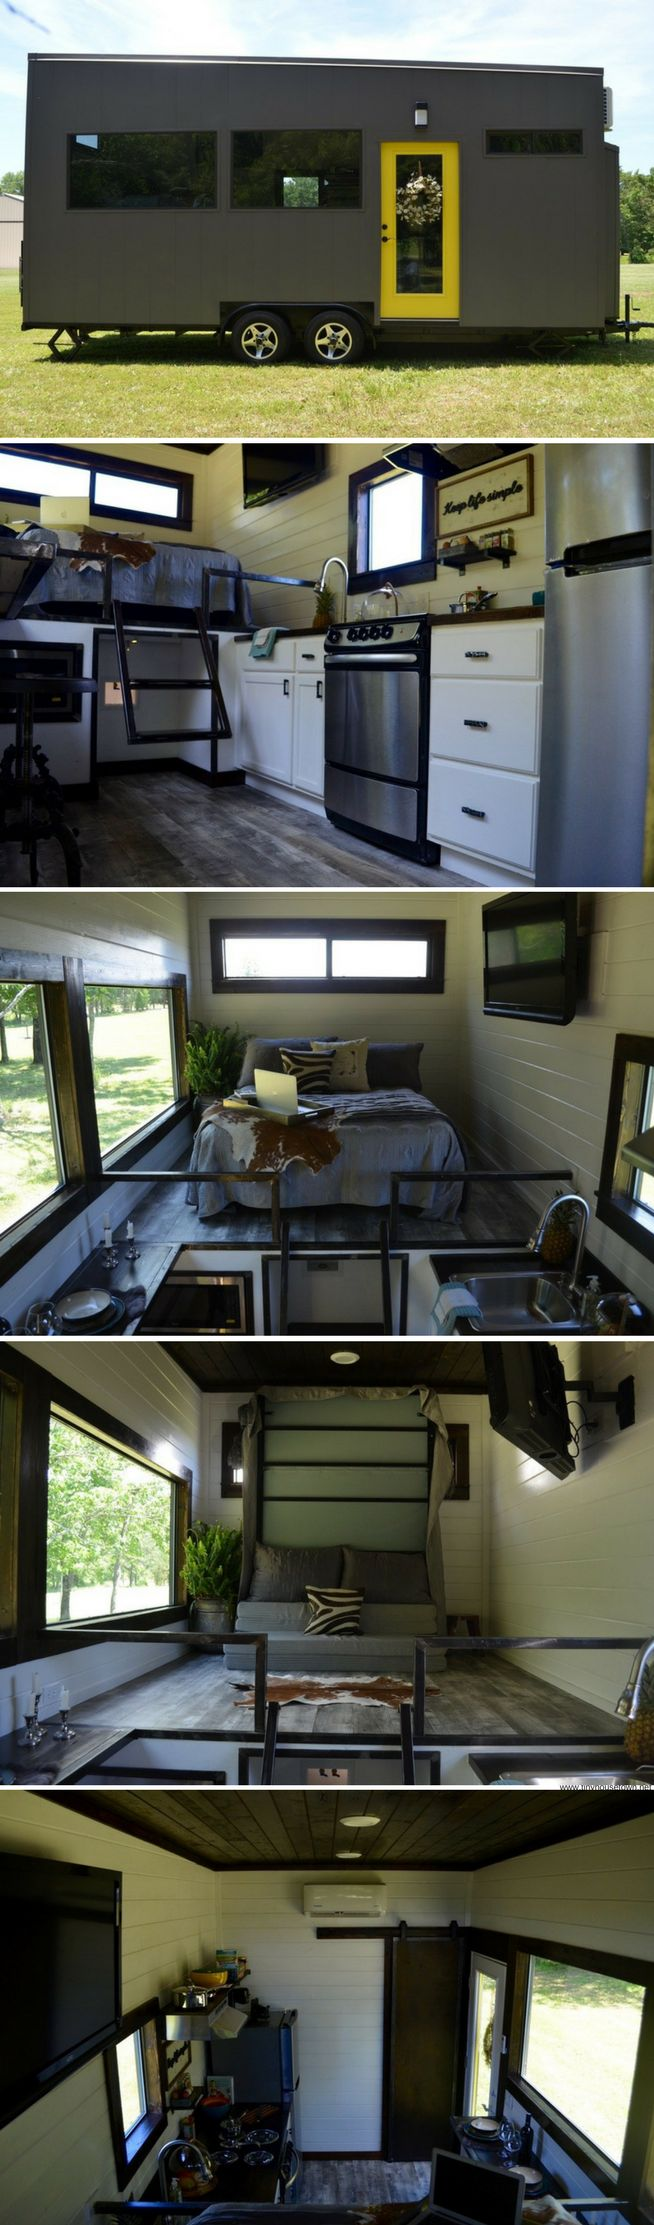 Shipping container homes living for the future earth911 com - A Tiny House Available For Sale In Arkansas